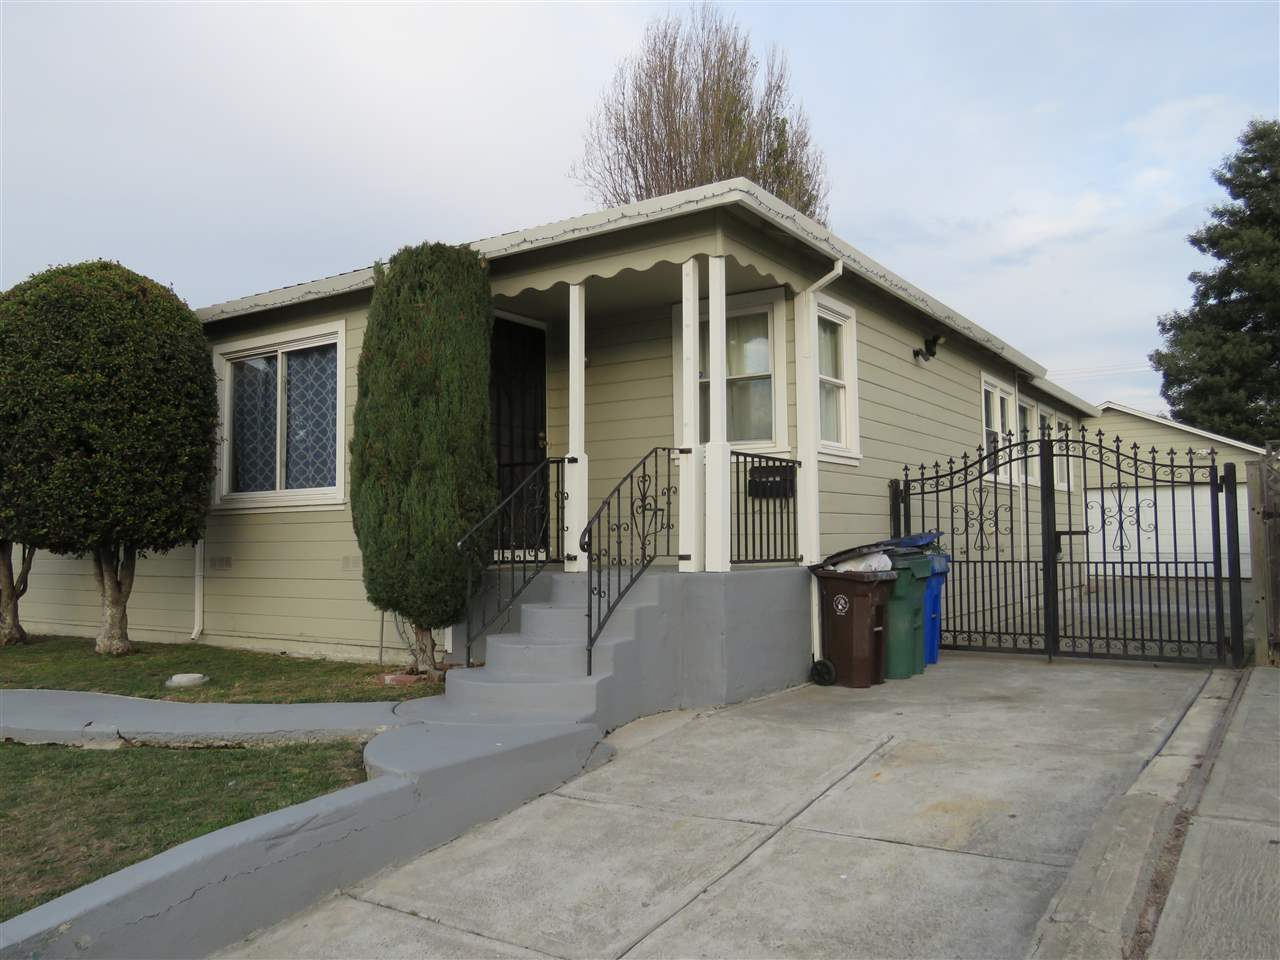 228 S 16TH ST, RICHMOND, CA 94804